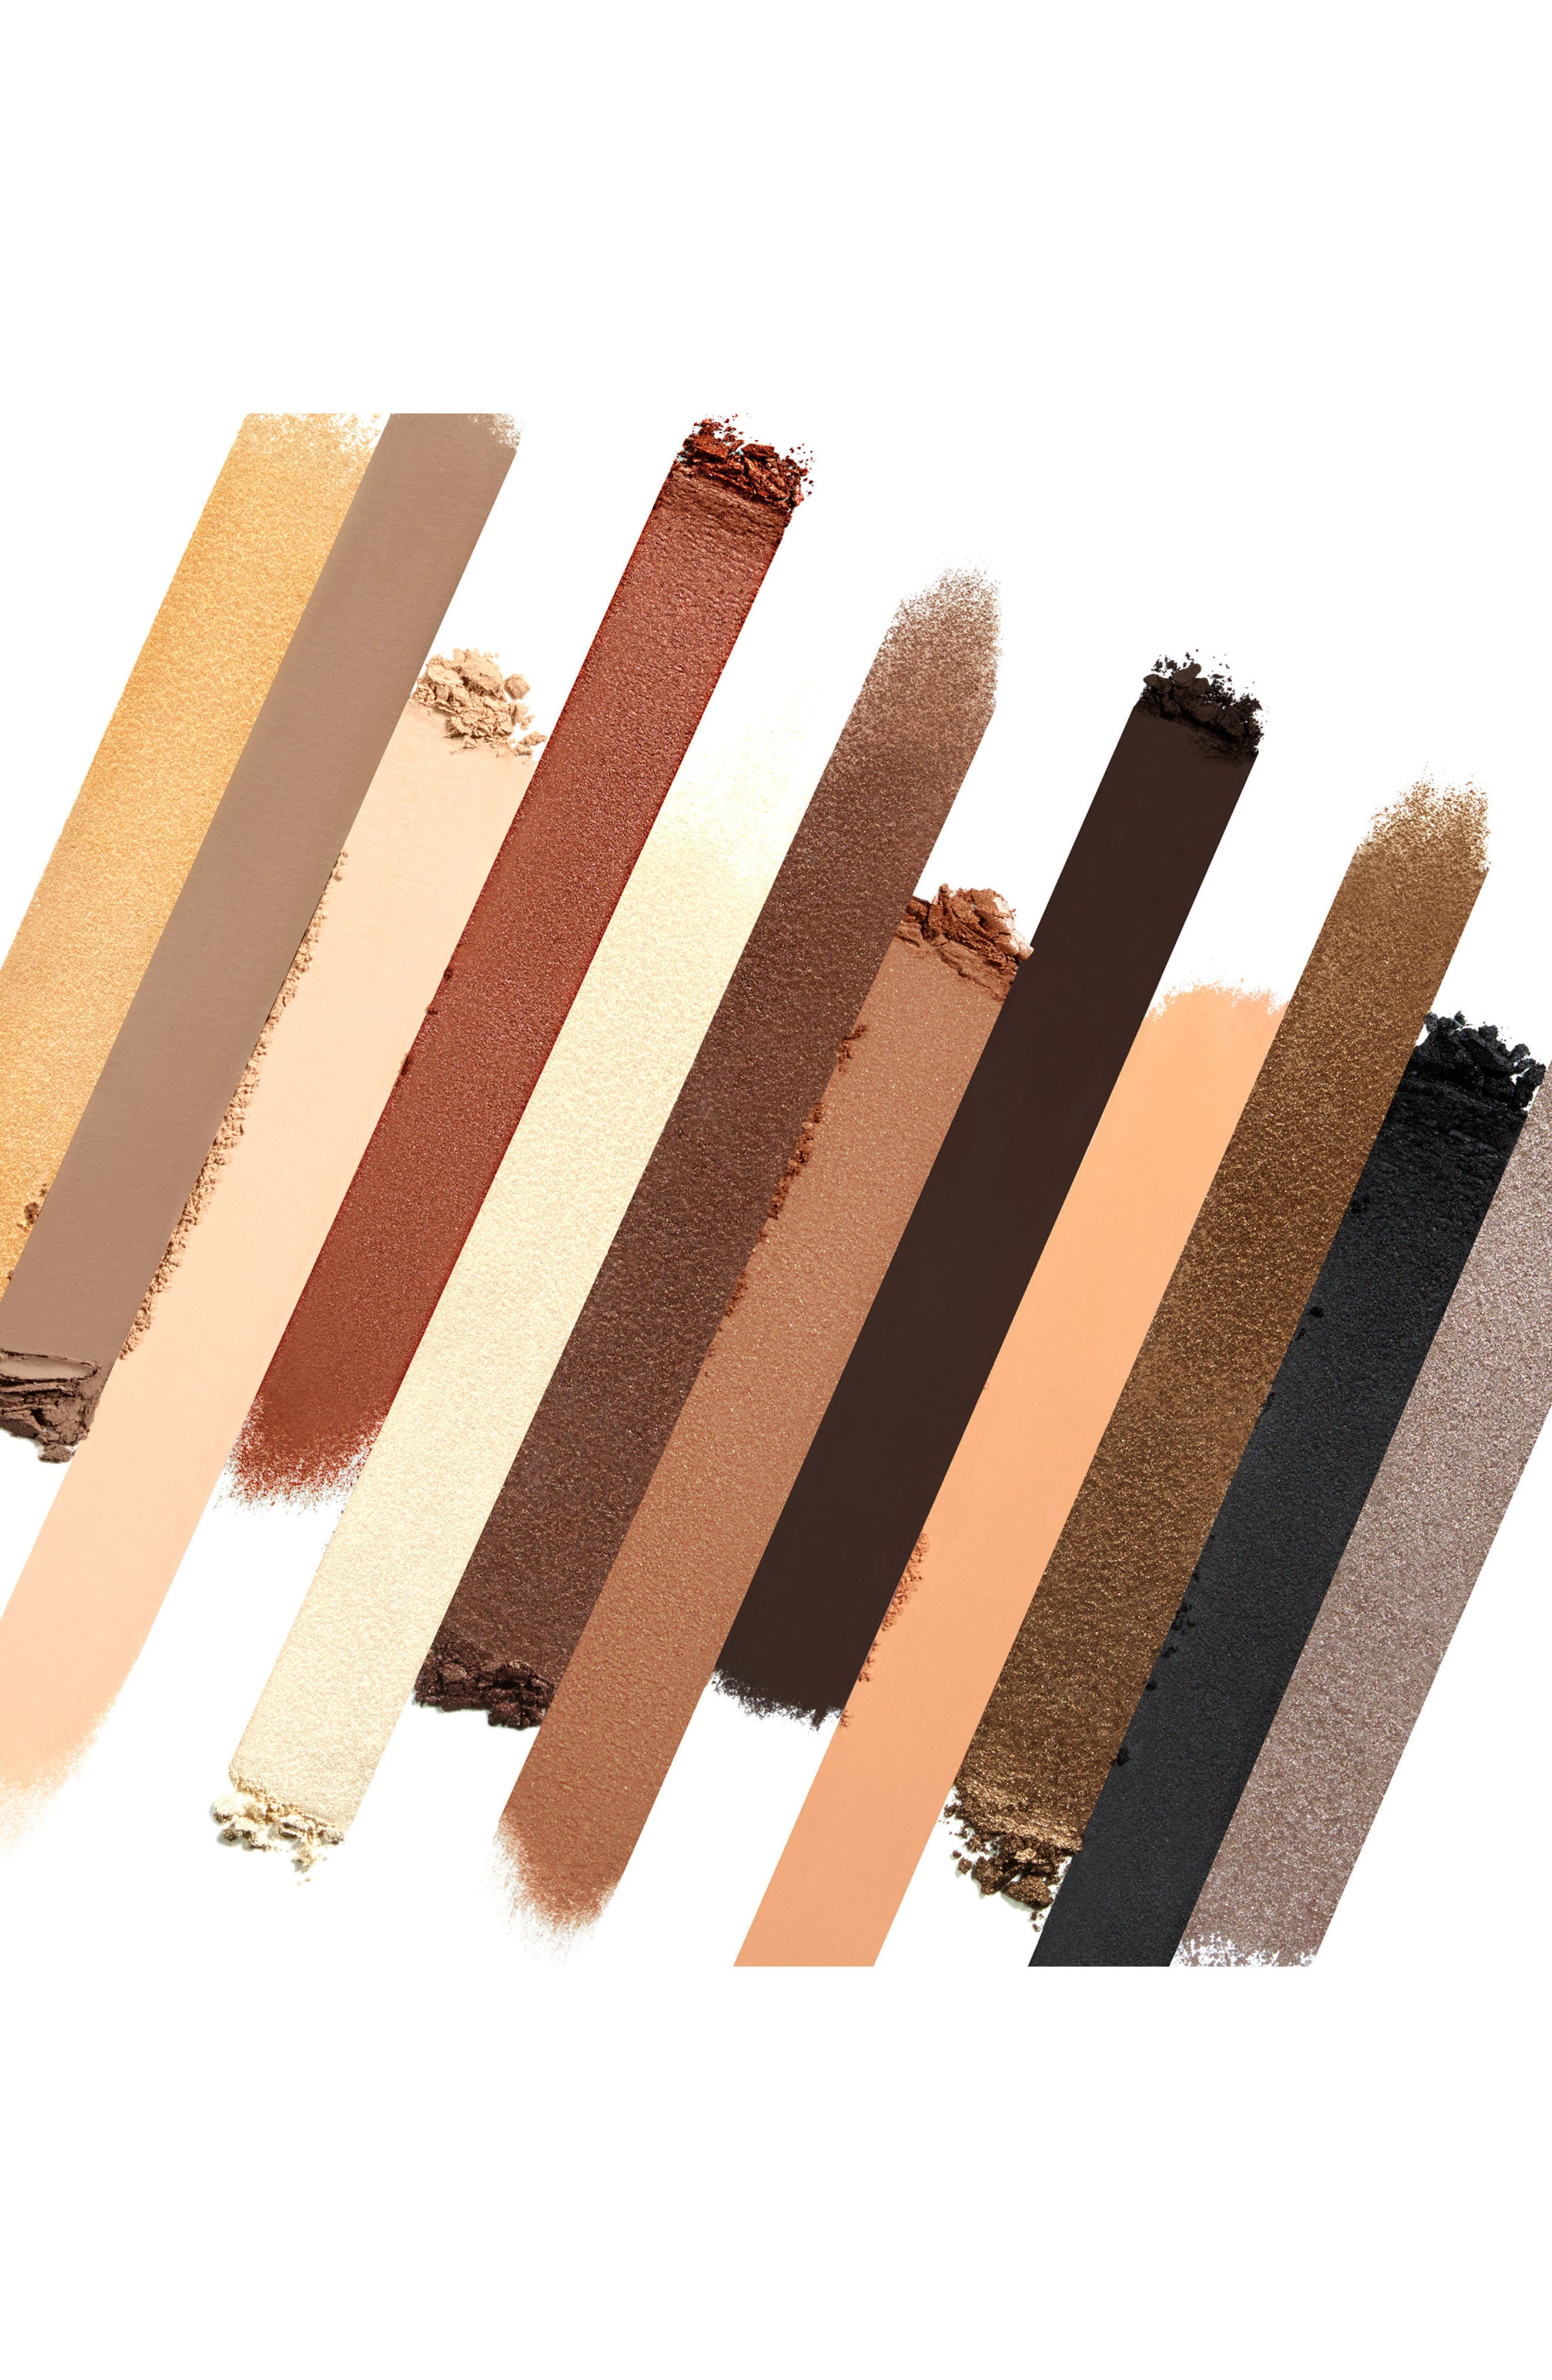 NARSissist Loaded Eyeshadow Palette,                             Alternate thumbnail 5, color,                             No Color